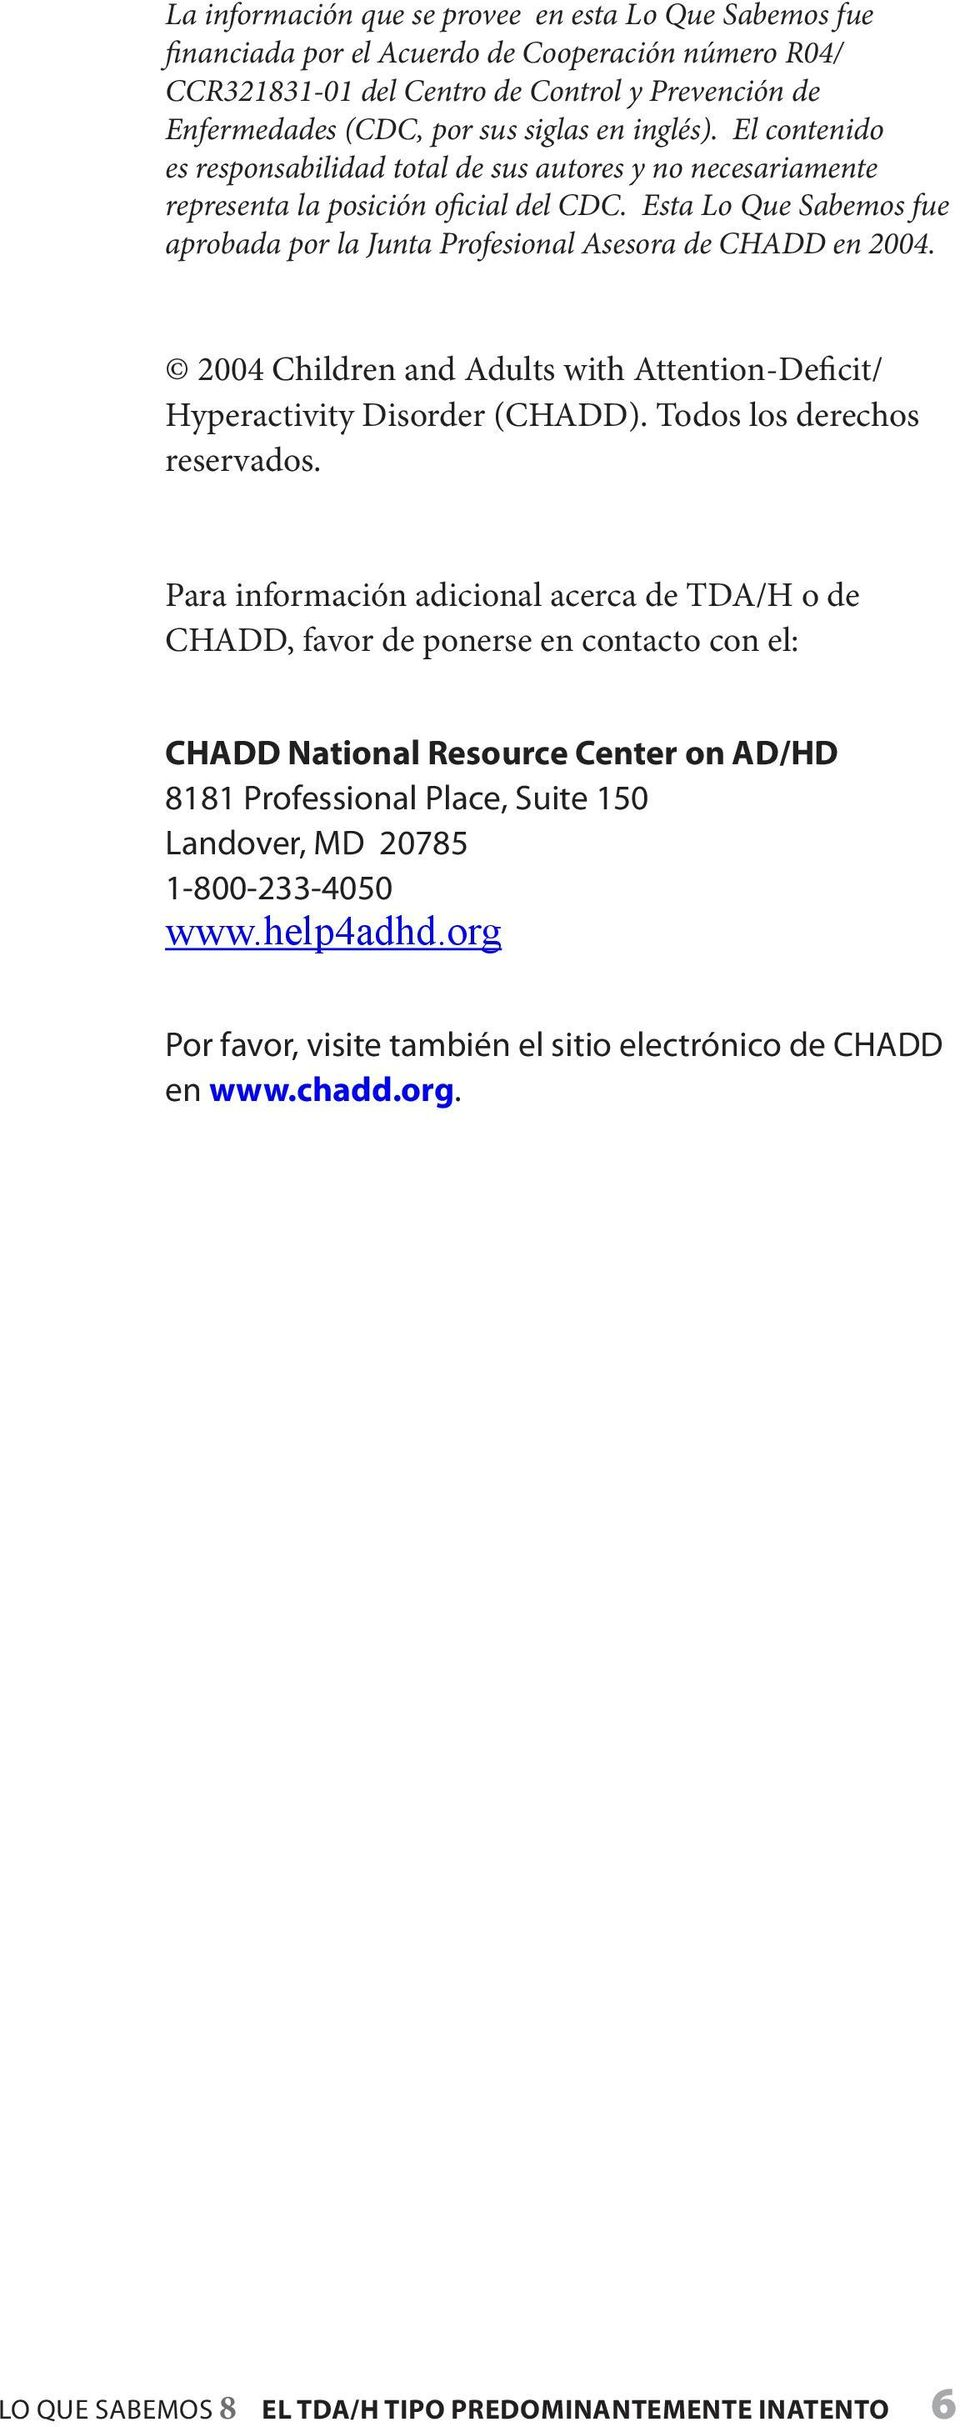 Esta Lo Que Sabemos fue aprobada por la Junta Profesional Asesora de CHADD en 2004. 2004 Children and Adults with Attention-Deficit/ Hyperactivity Disorder (CHADD). Todos los derechos reservados.